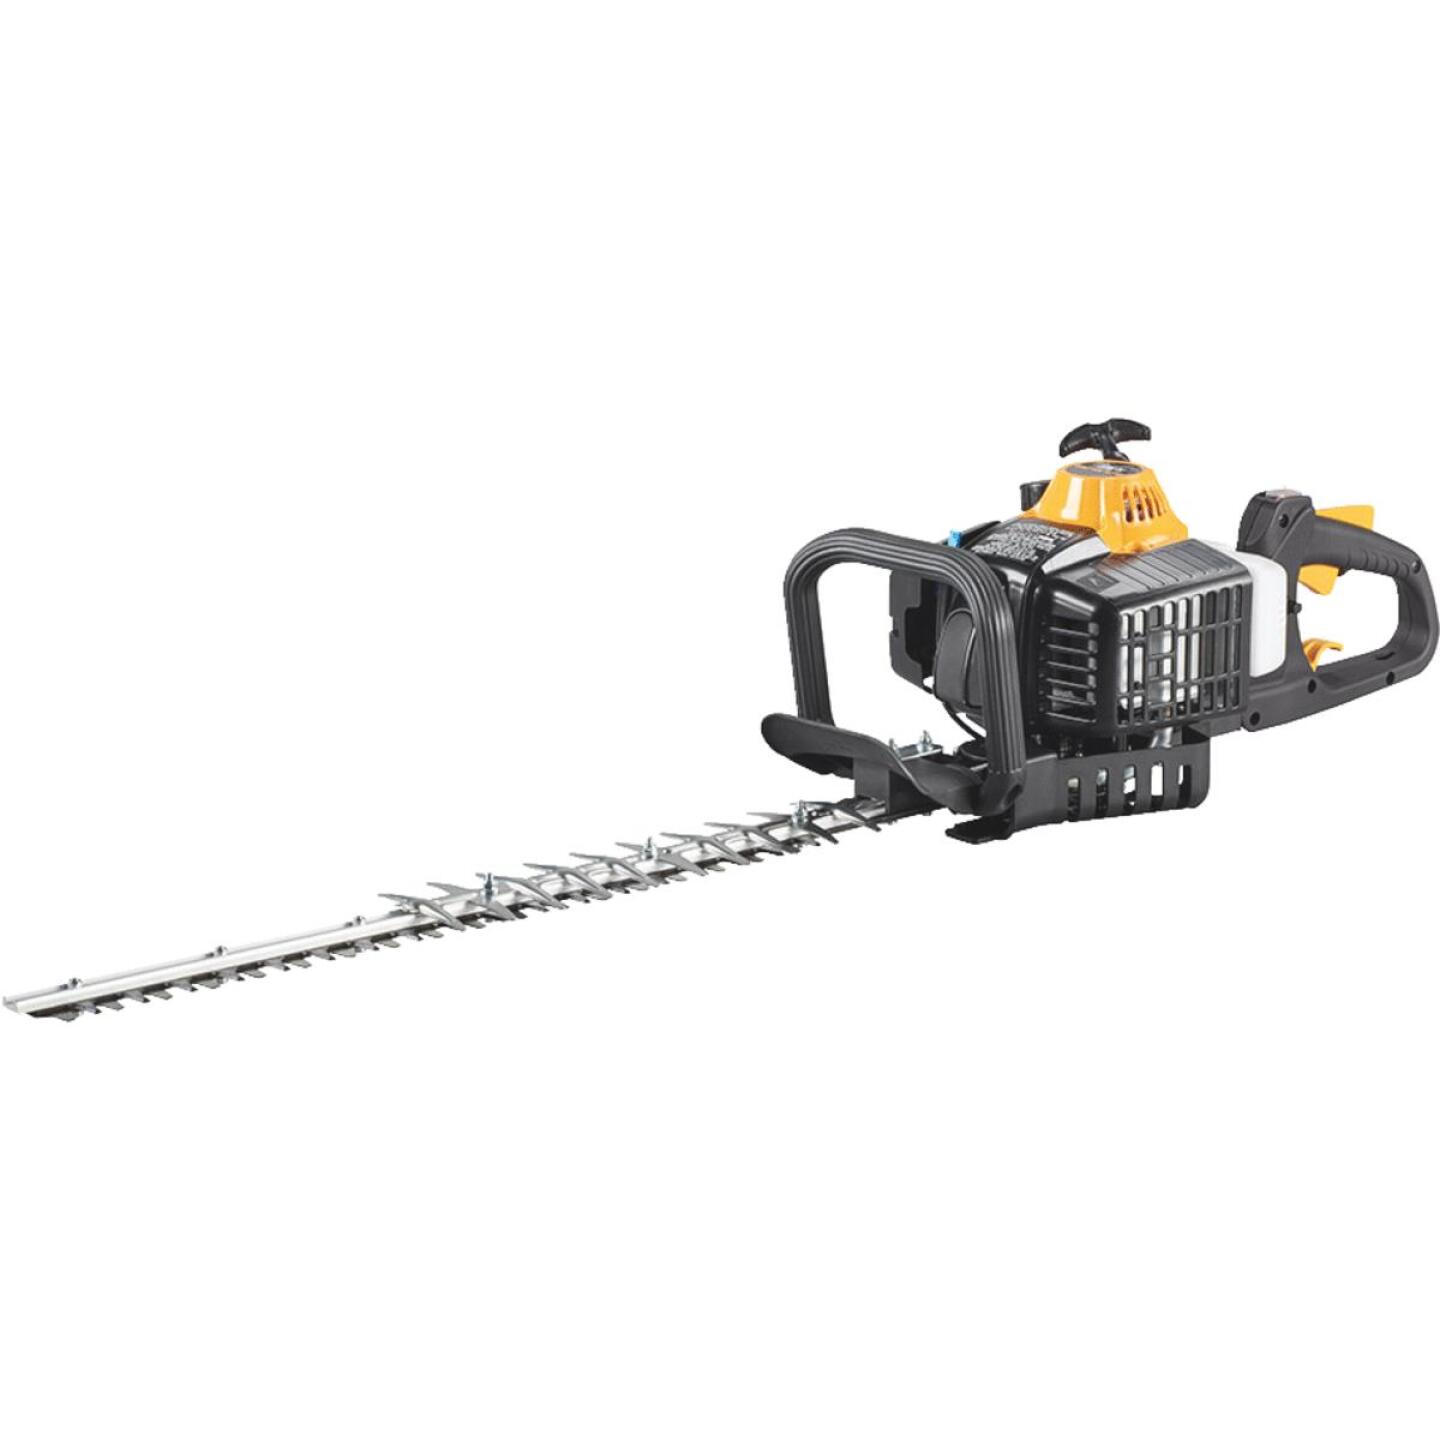 Poulan Pro PP2822 22 In. 23CC Gas Hedge Trimmer Image 1